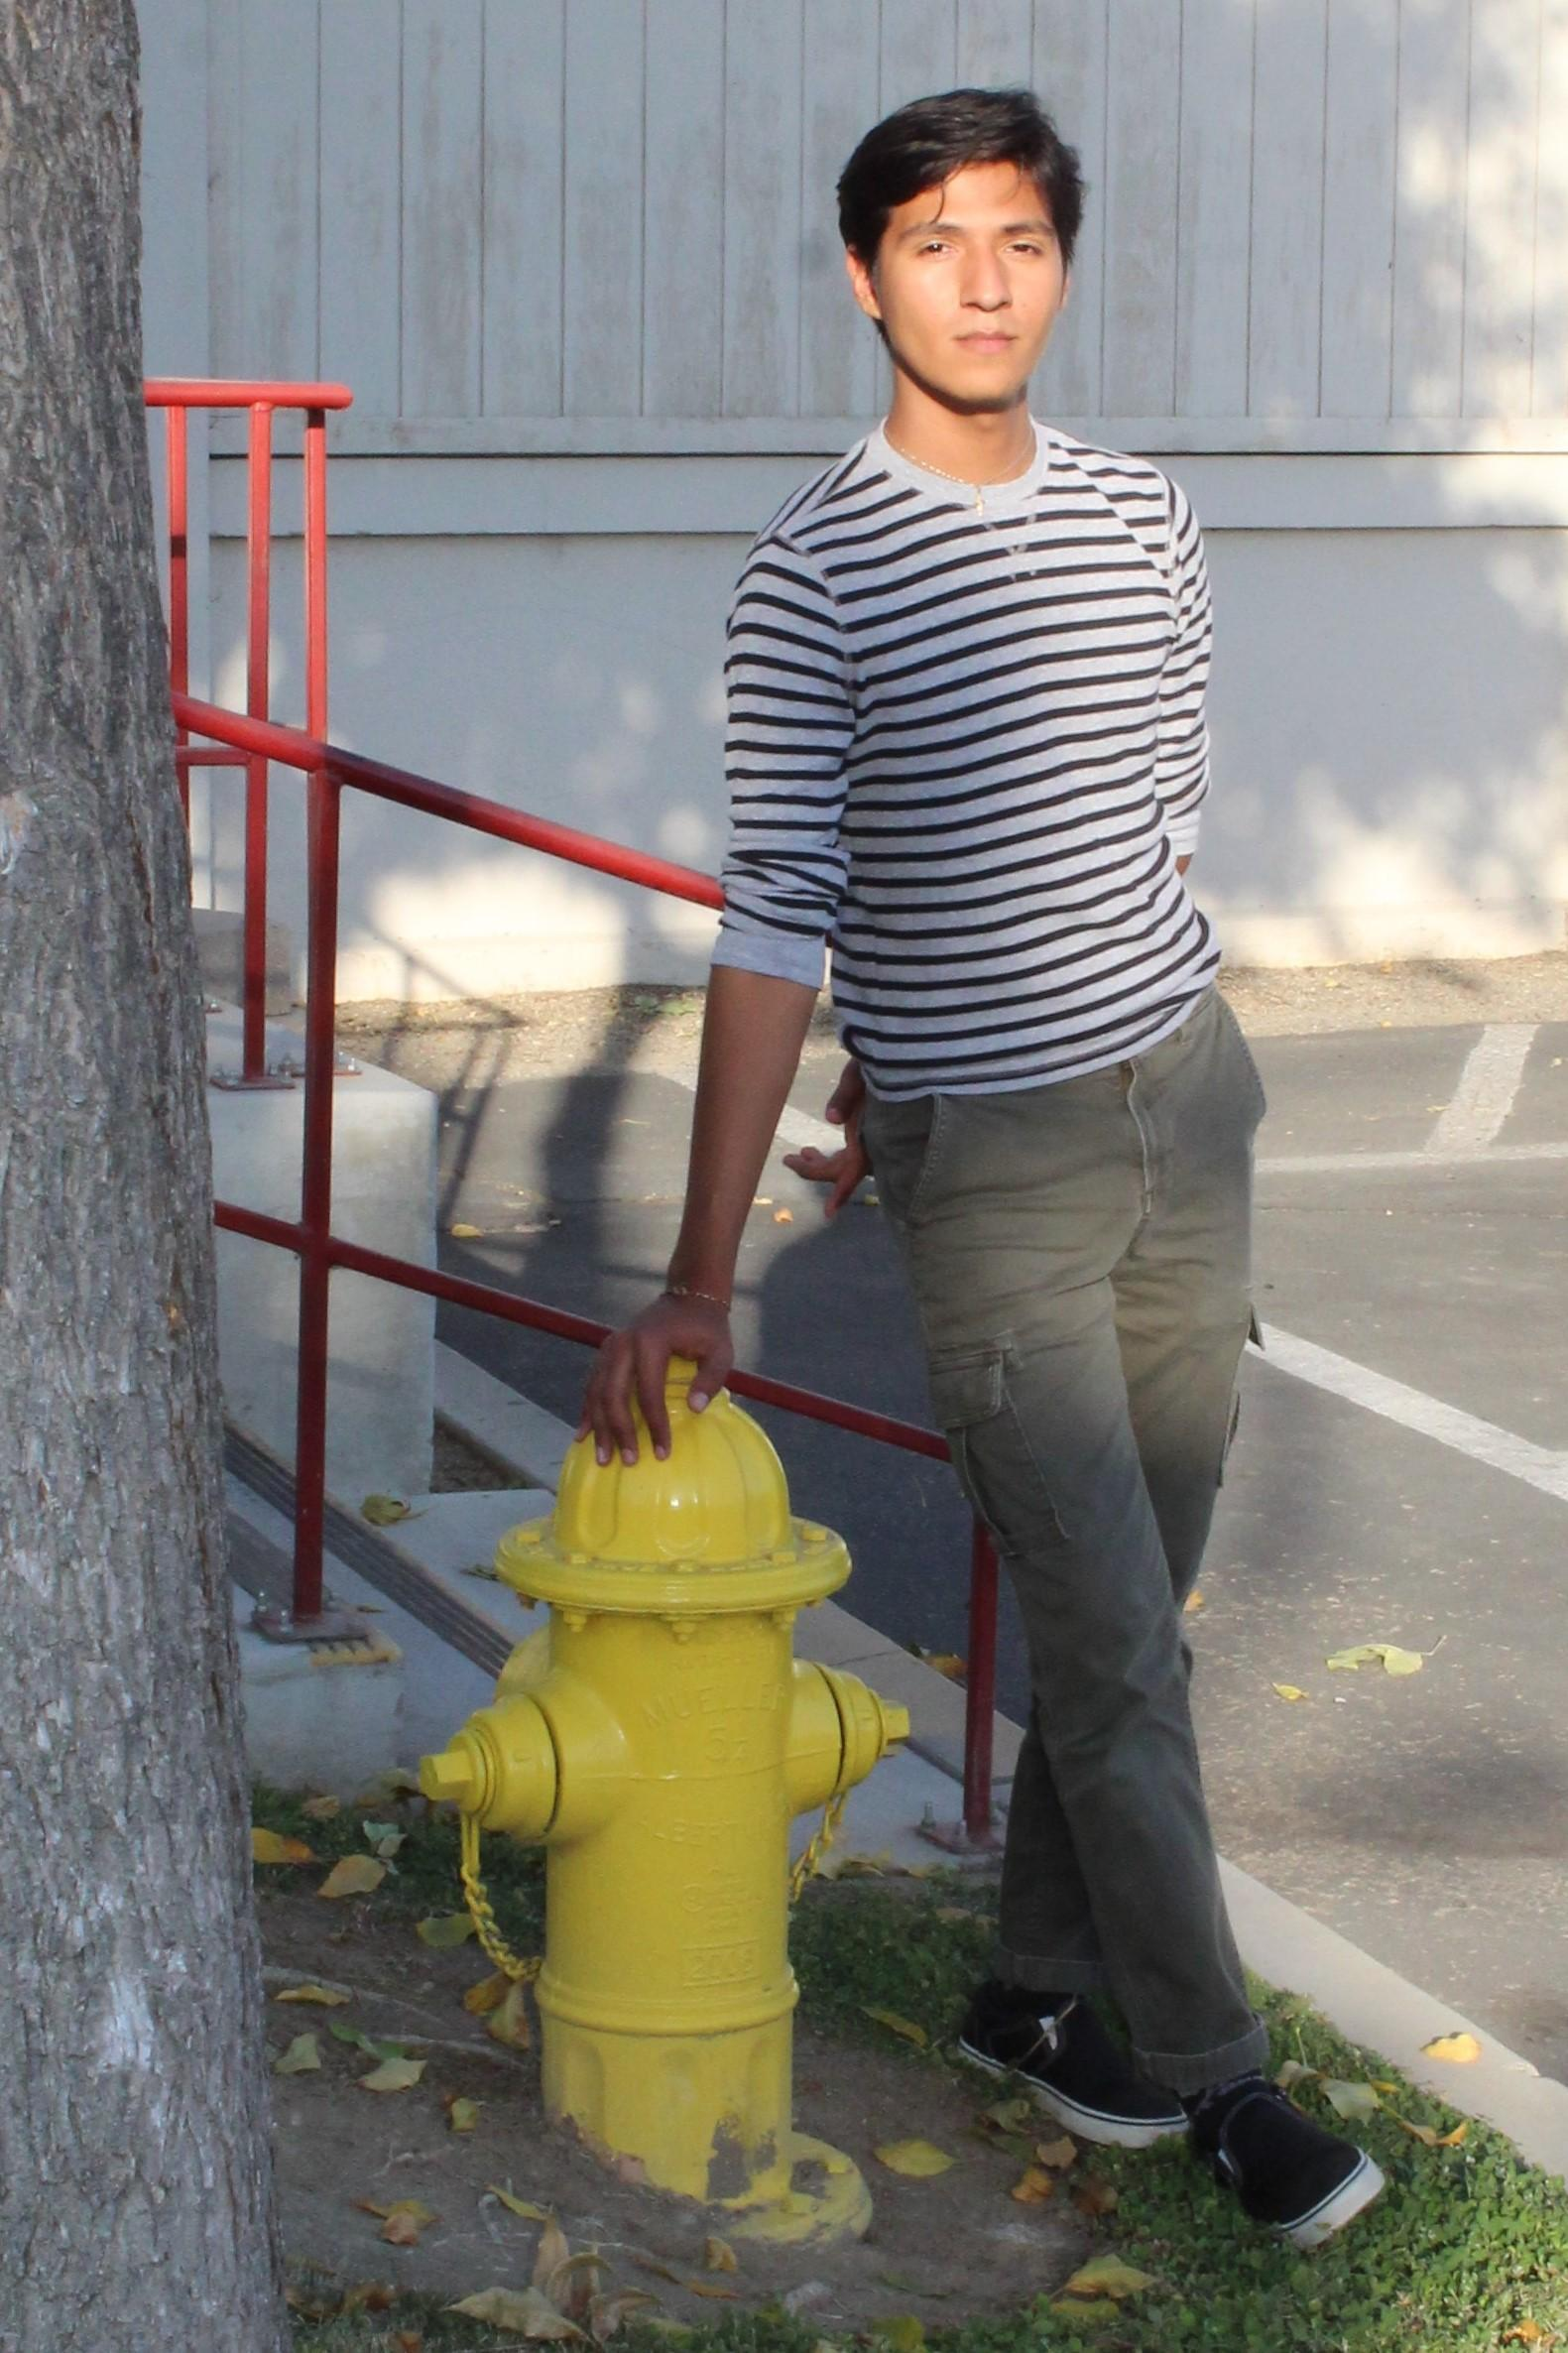 Background distraction - leaning on a fire hydrant